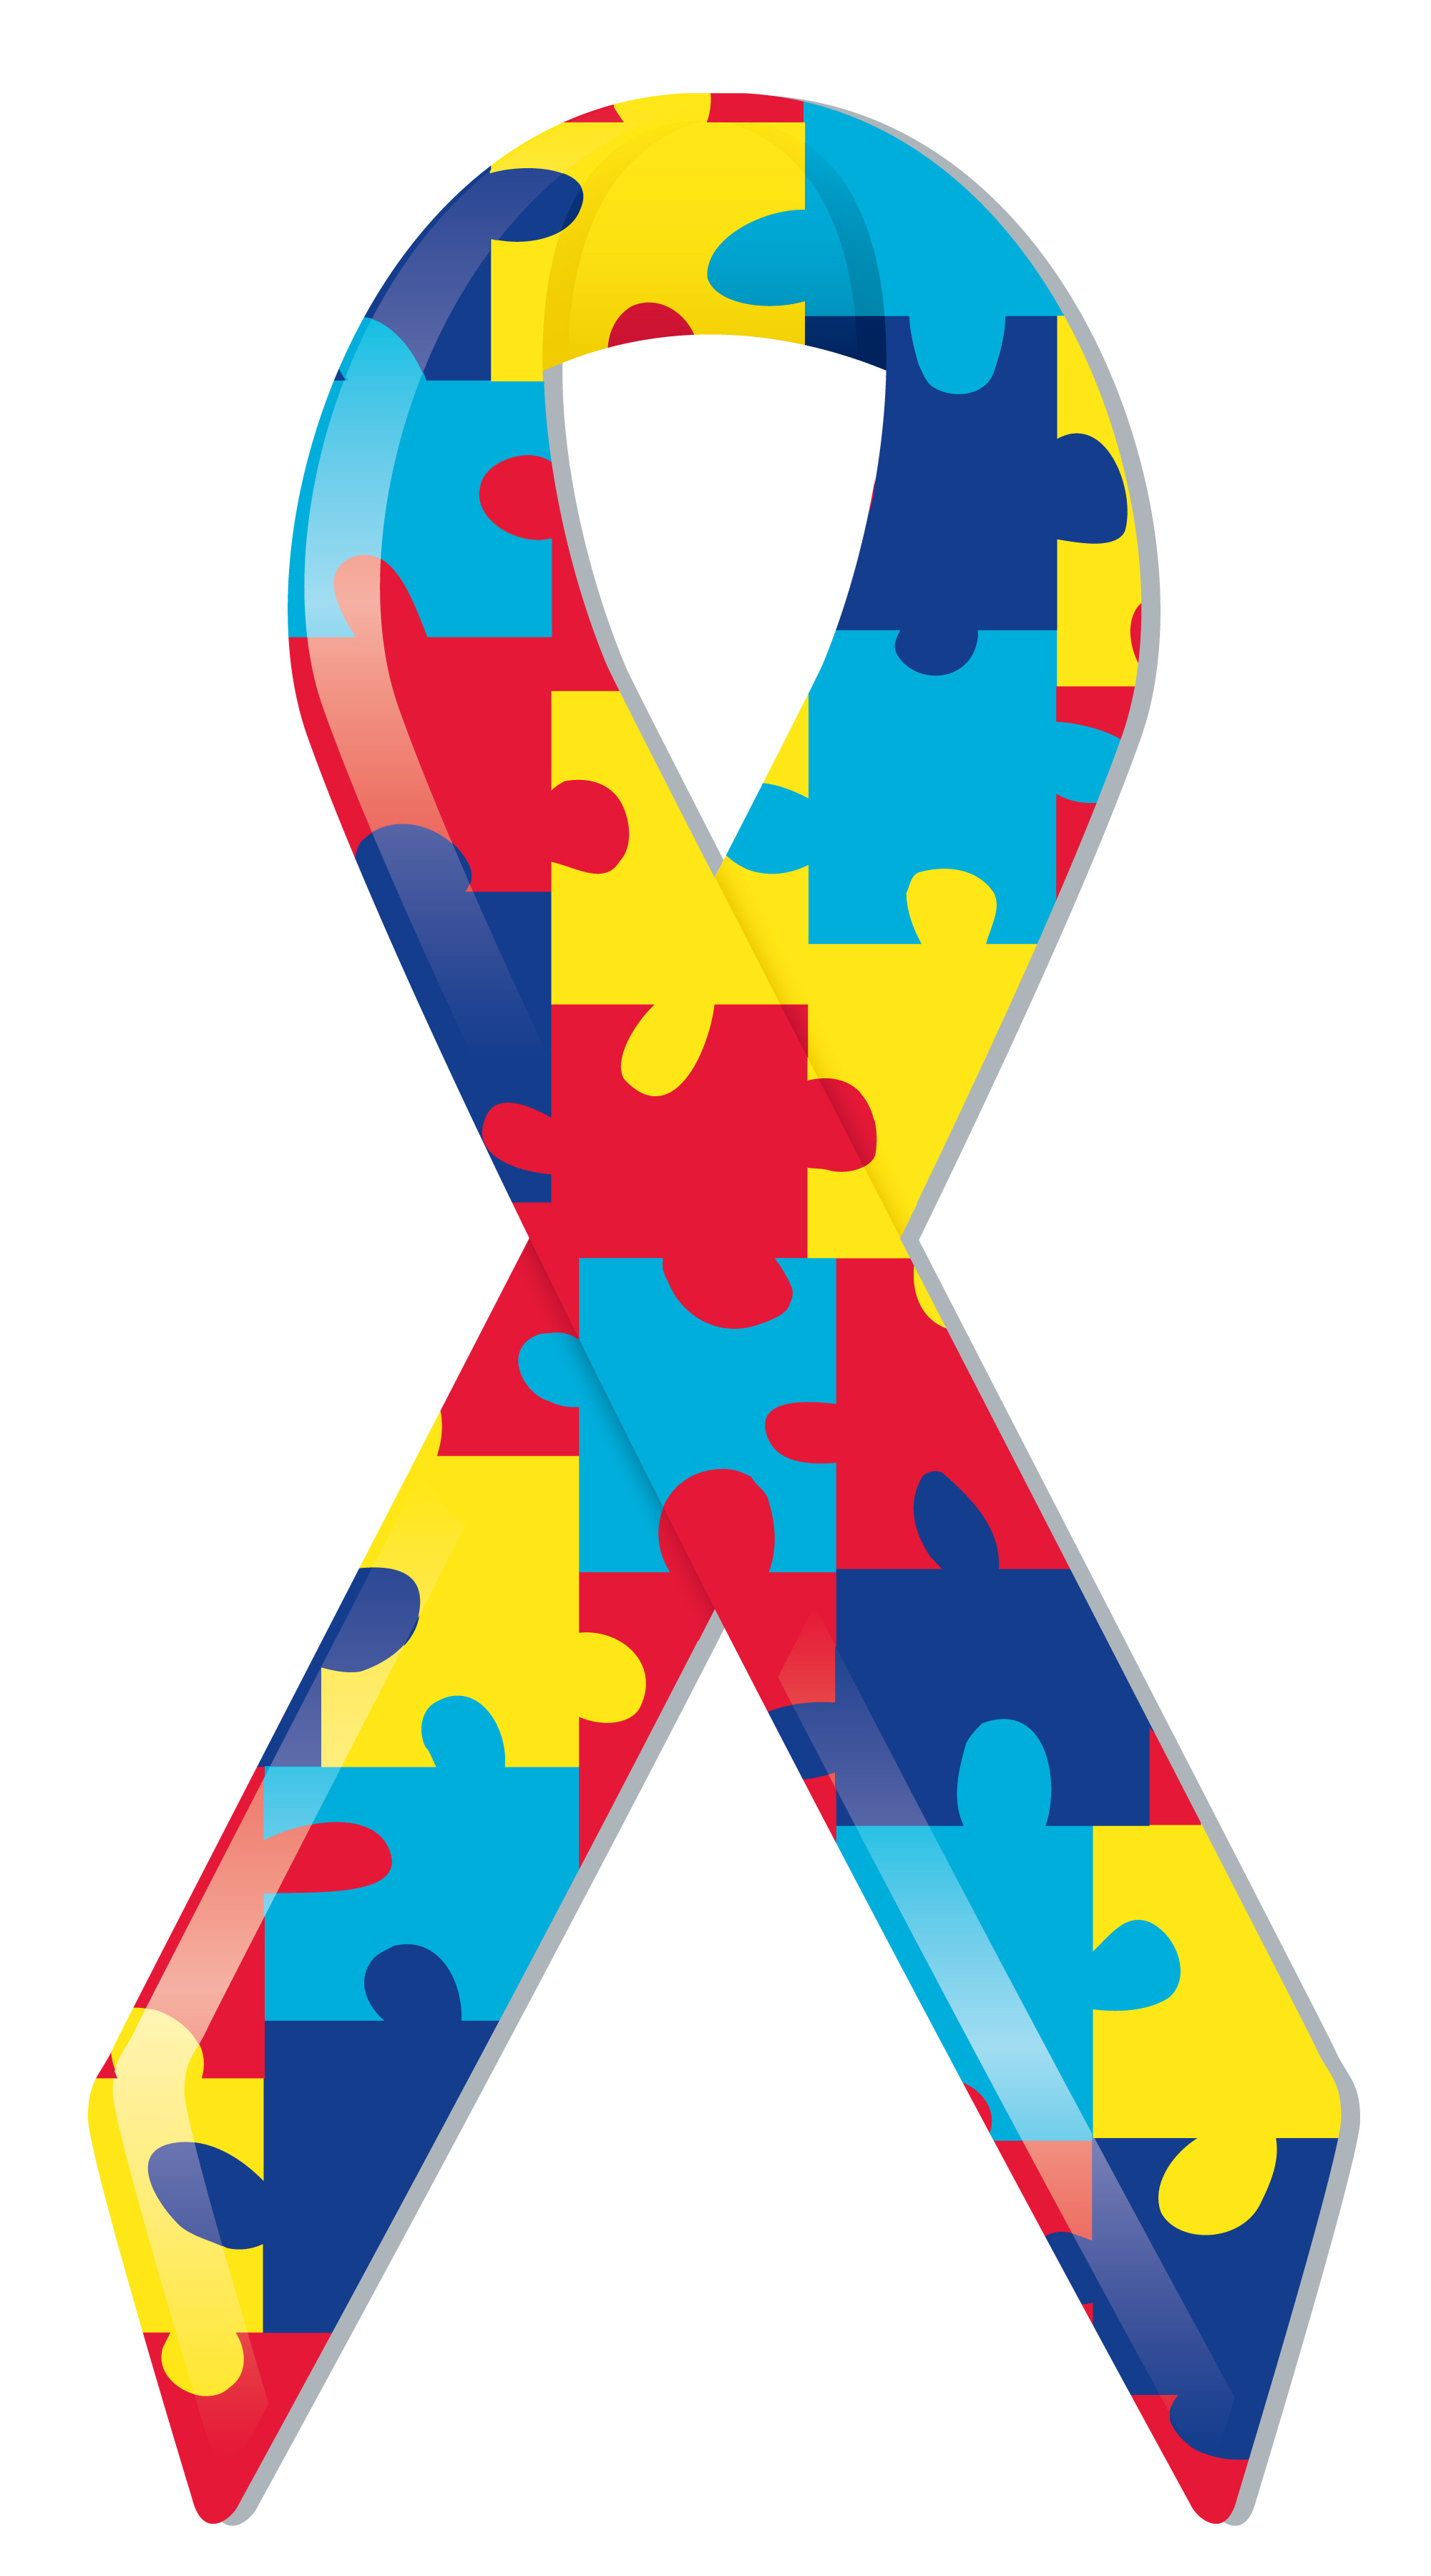 Autism awareness clipart. Clip art free download